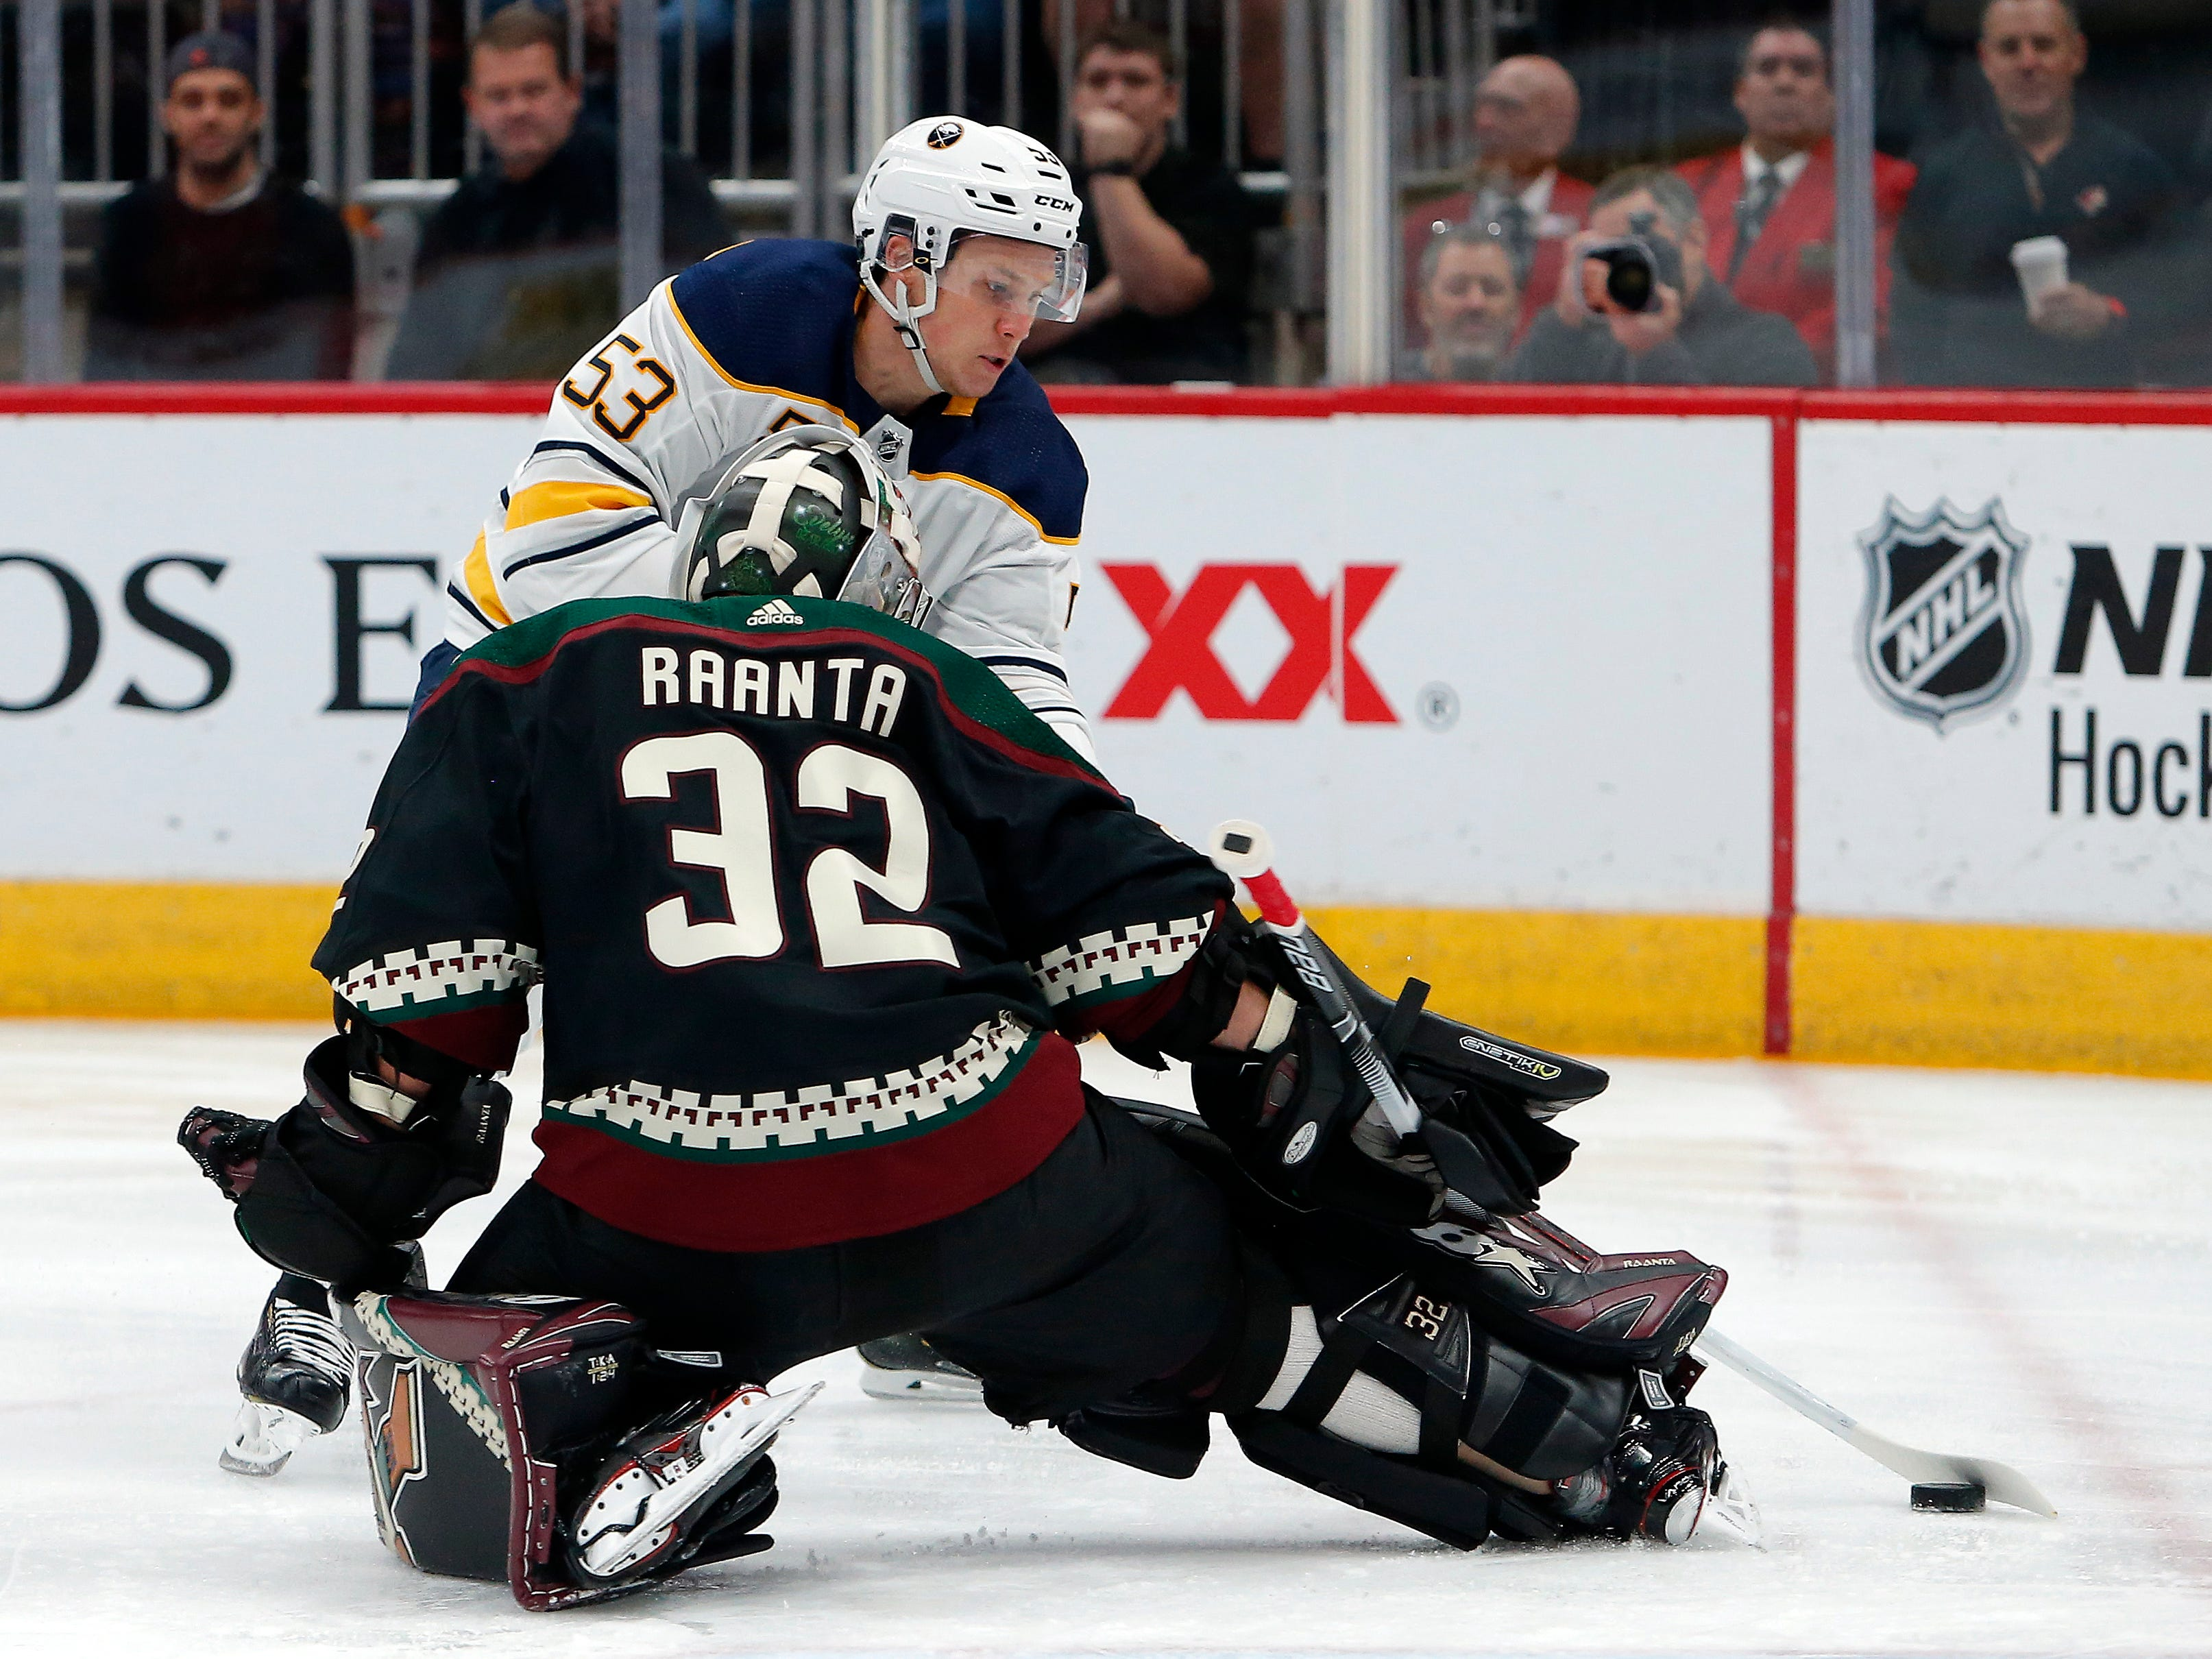 Buffalo Sabres center Jeff Skinner shoots on Arizona Coyotes goaltender Antti Raanta (32) in the first period during an NHL hockey game, Saturday, Oct. 13, 2018, in Glendale, Ariz.